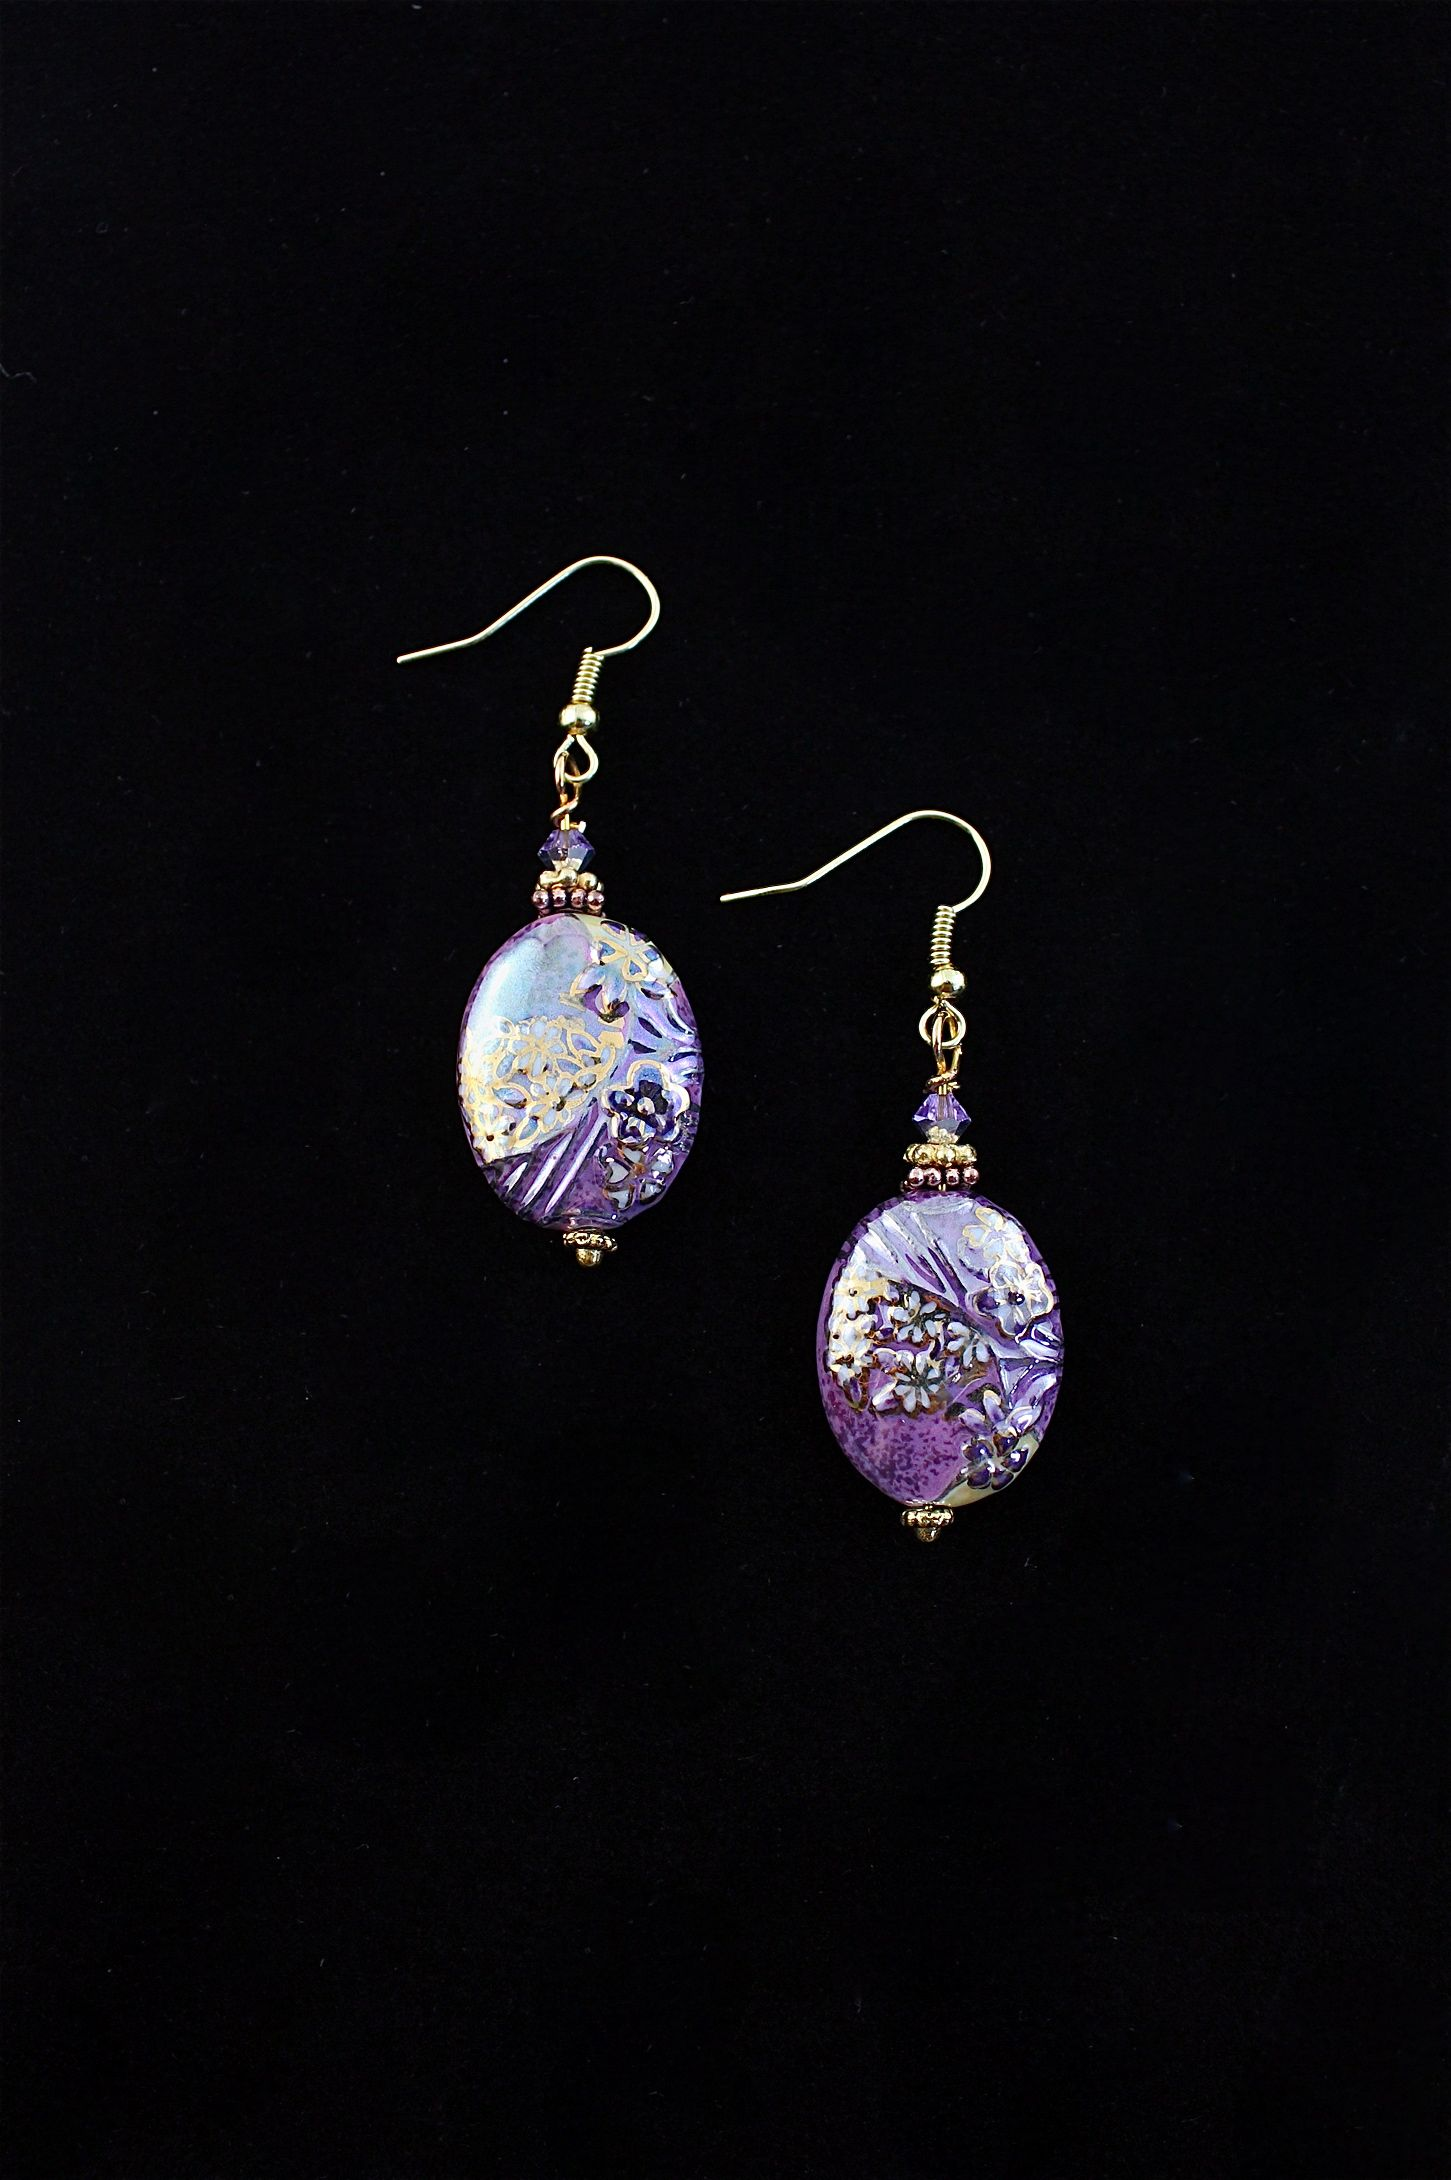 Purple Mojo Earrings...who doesn't love purple?  These purple handmade glass earrings are just the trick.  Vermeil accents and NICKEL free wires.  $58.00  www.spitfiredesignsjewelry.com